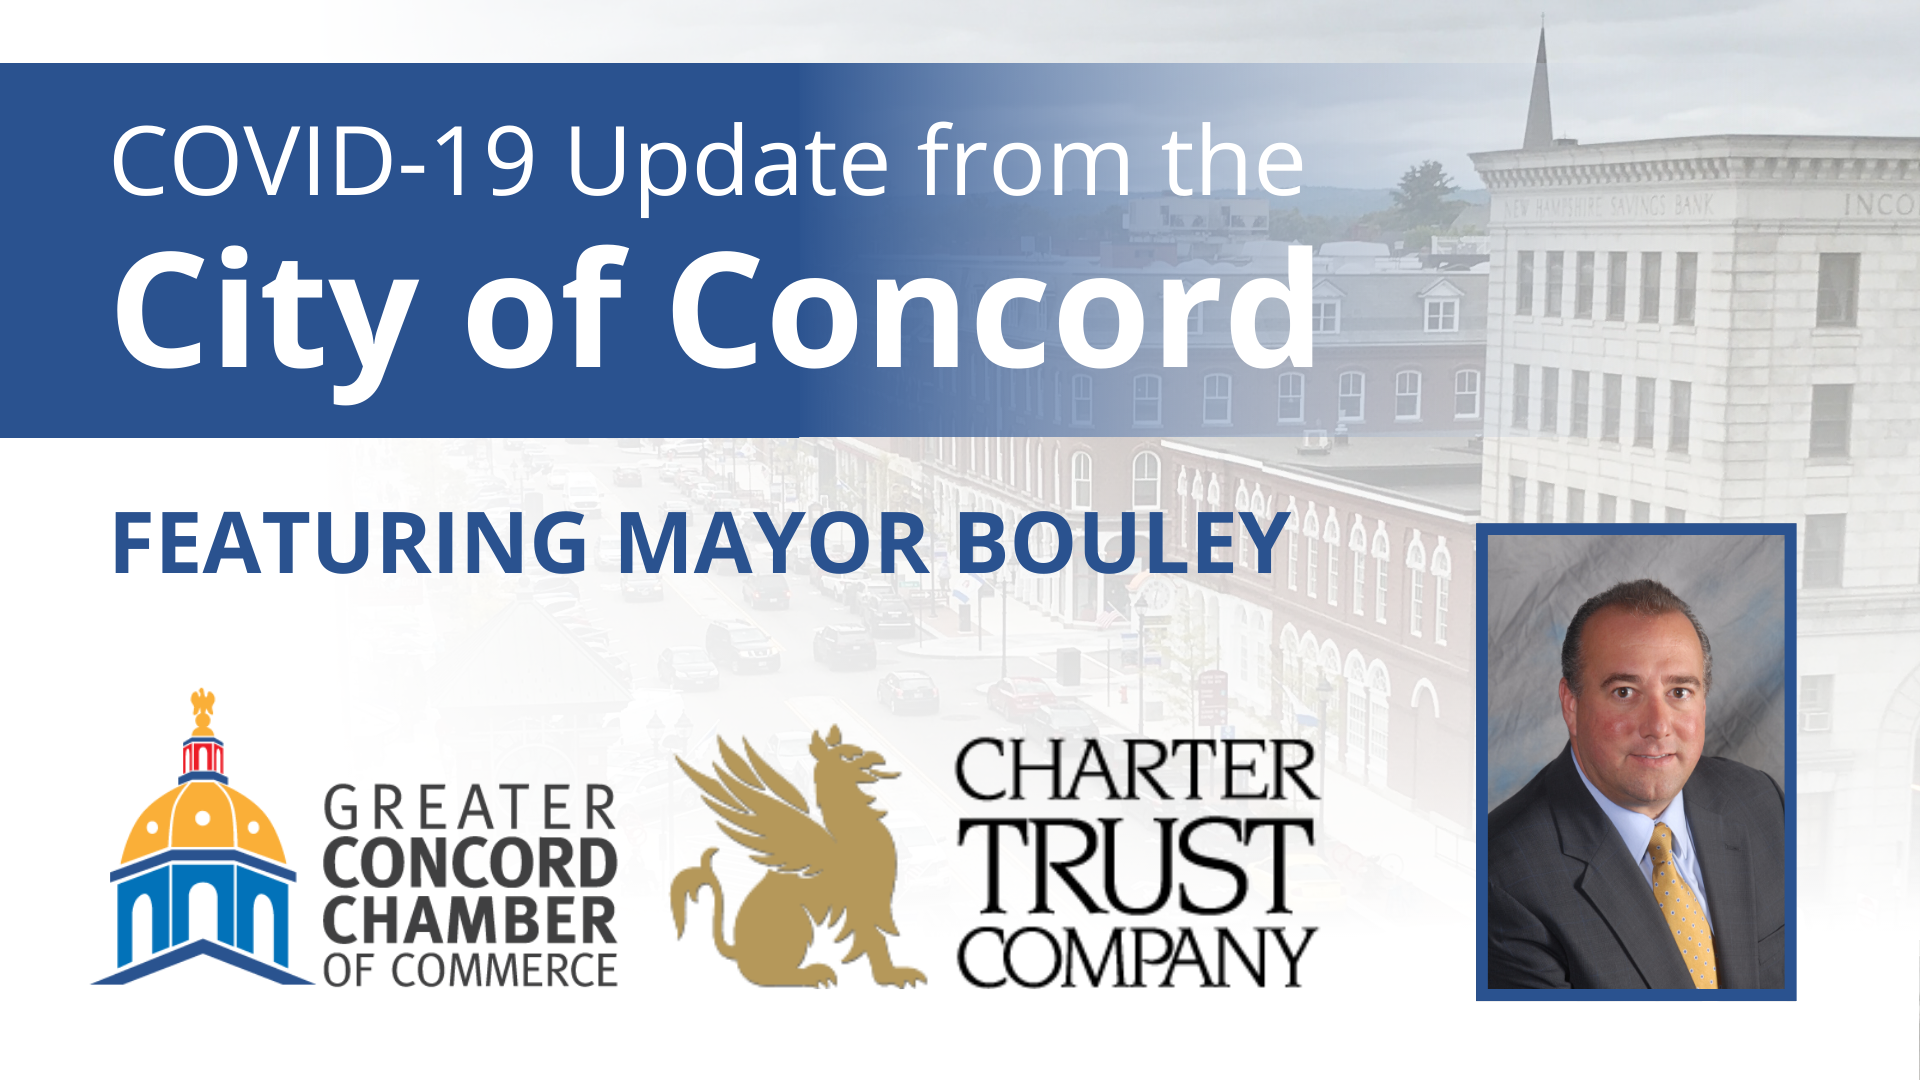 The Greater Concord Chamber of Commerce will host a complimentary webinar, COVID-19 Update from the City of Concord, featuring Mayor Jim Bouley on Thursday, April 21, 2020 from 2-3 p.m.